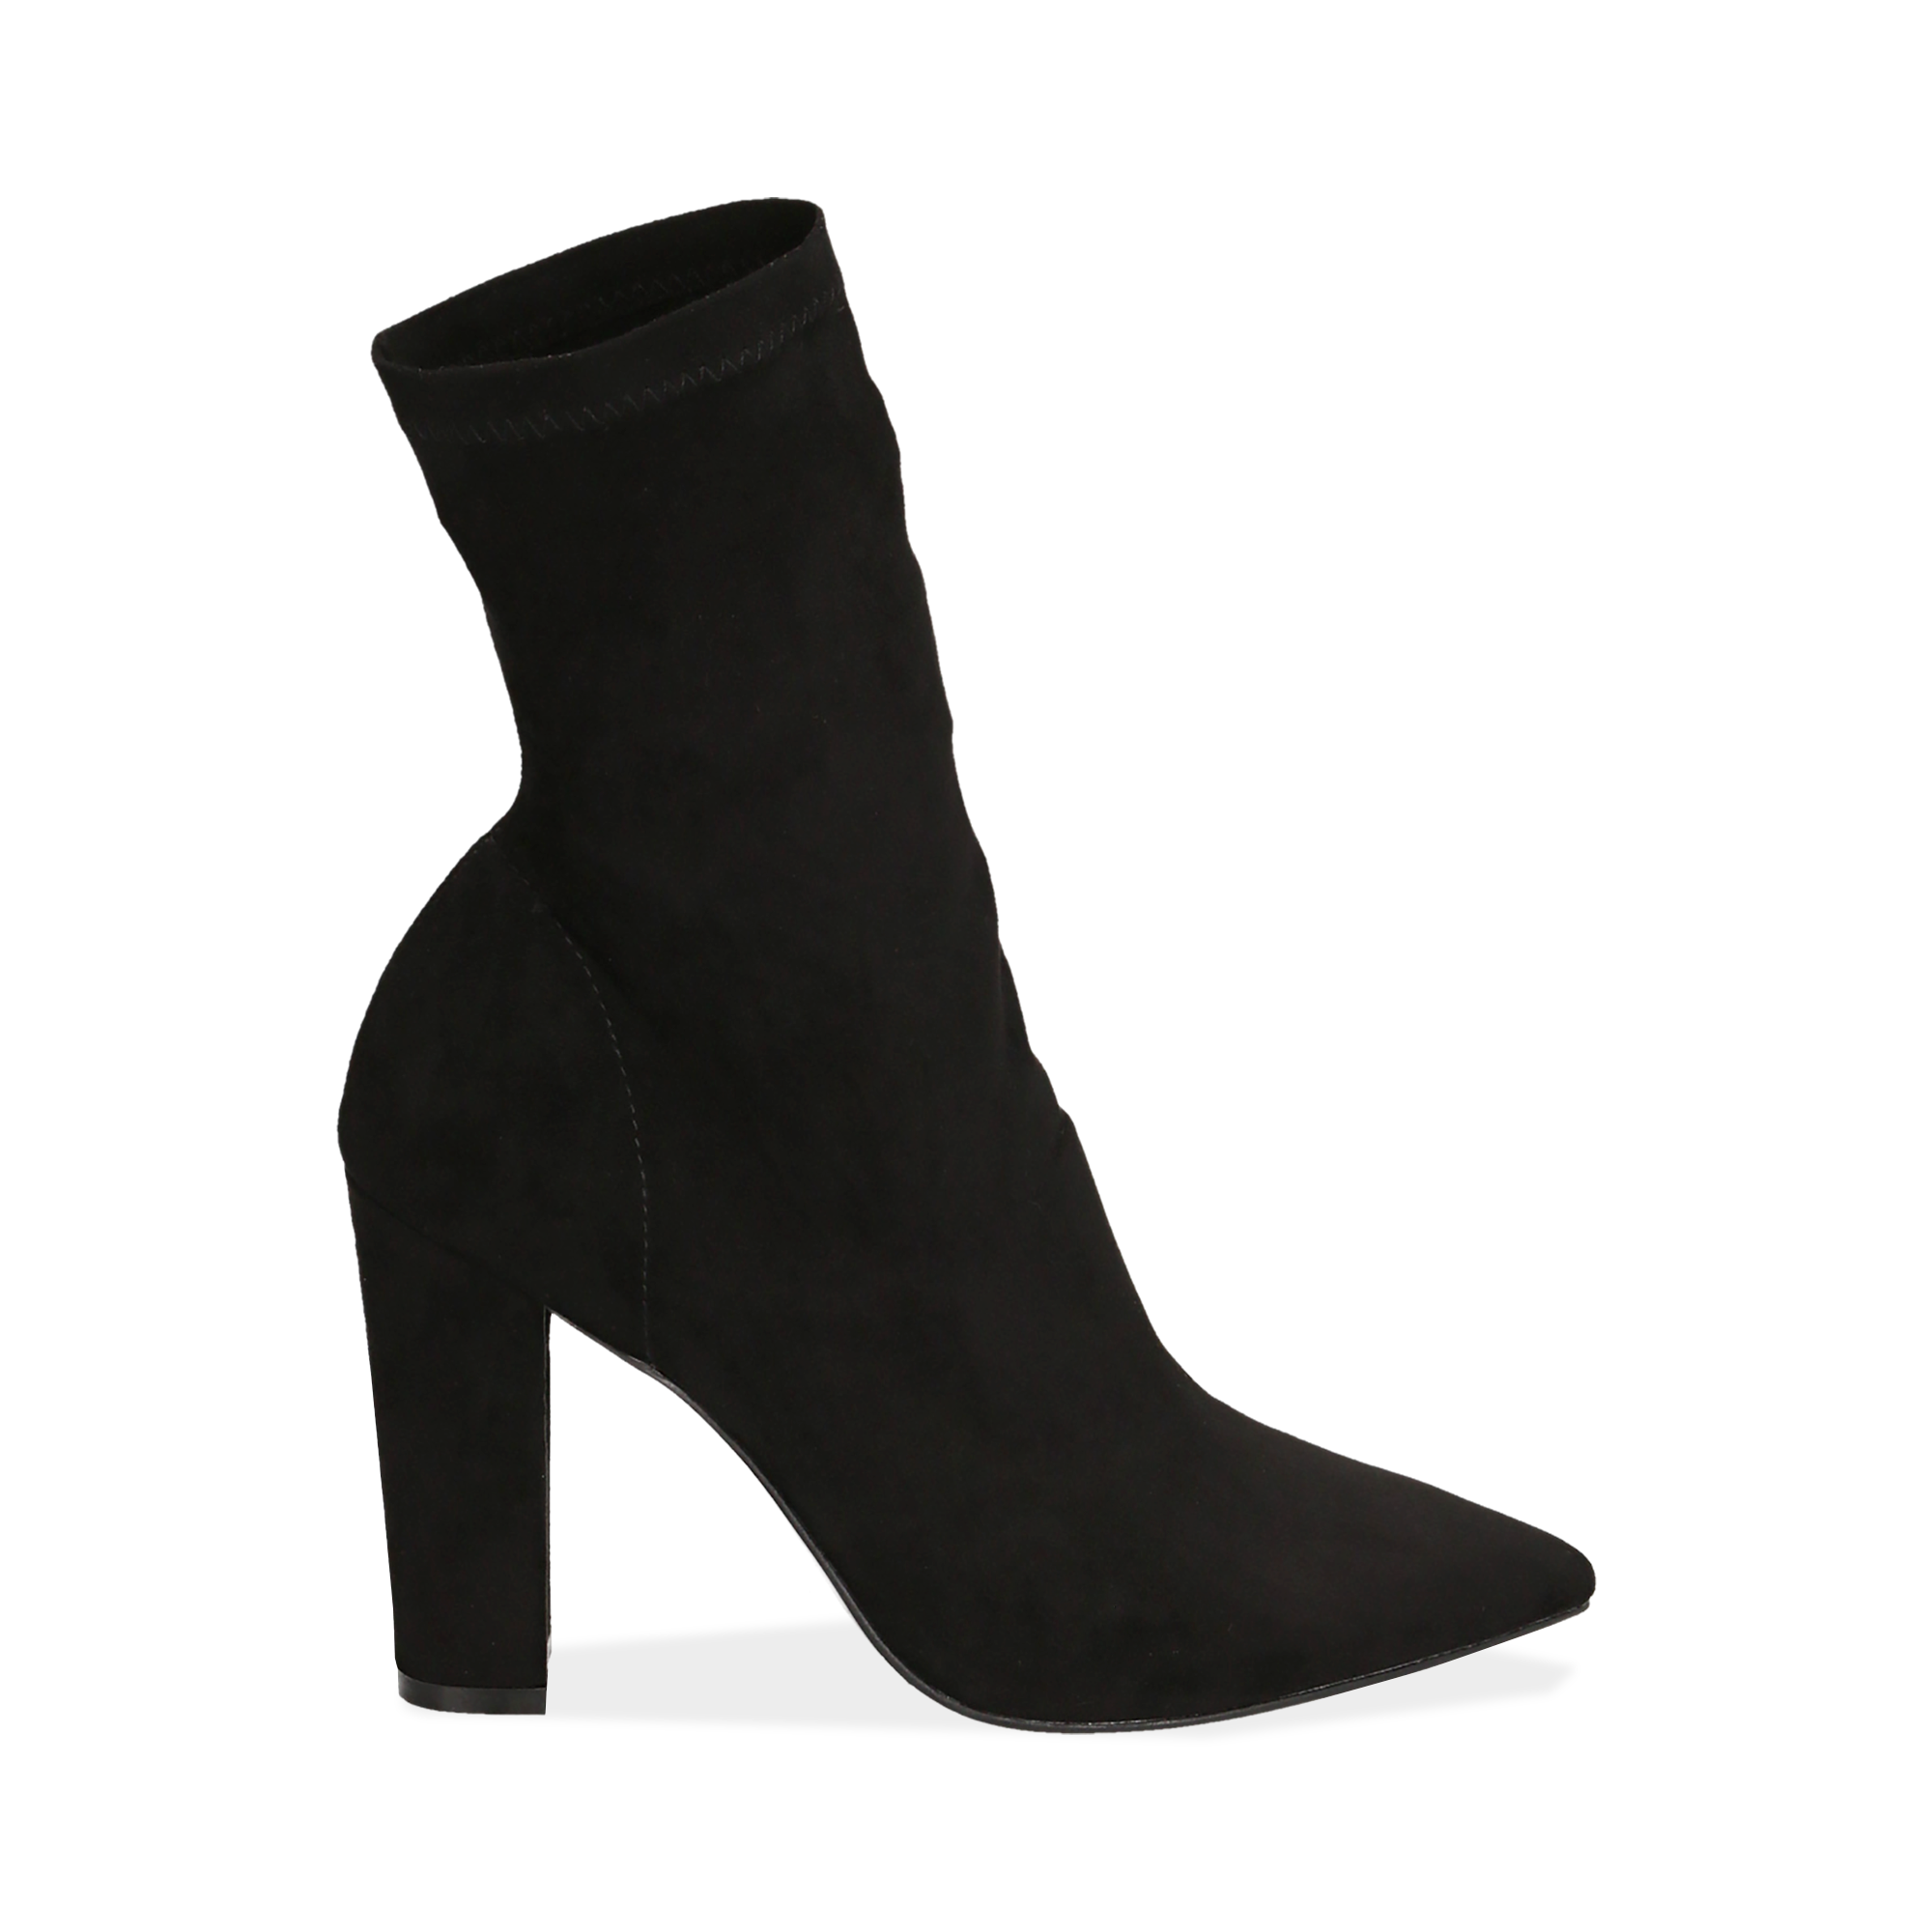 Ankle boots a punta neri in microfibra, tacco 10 cm